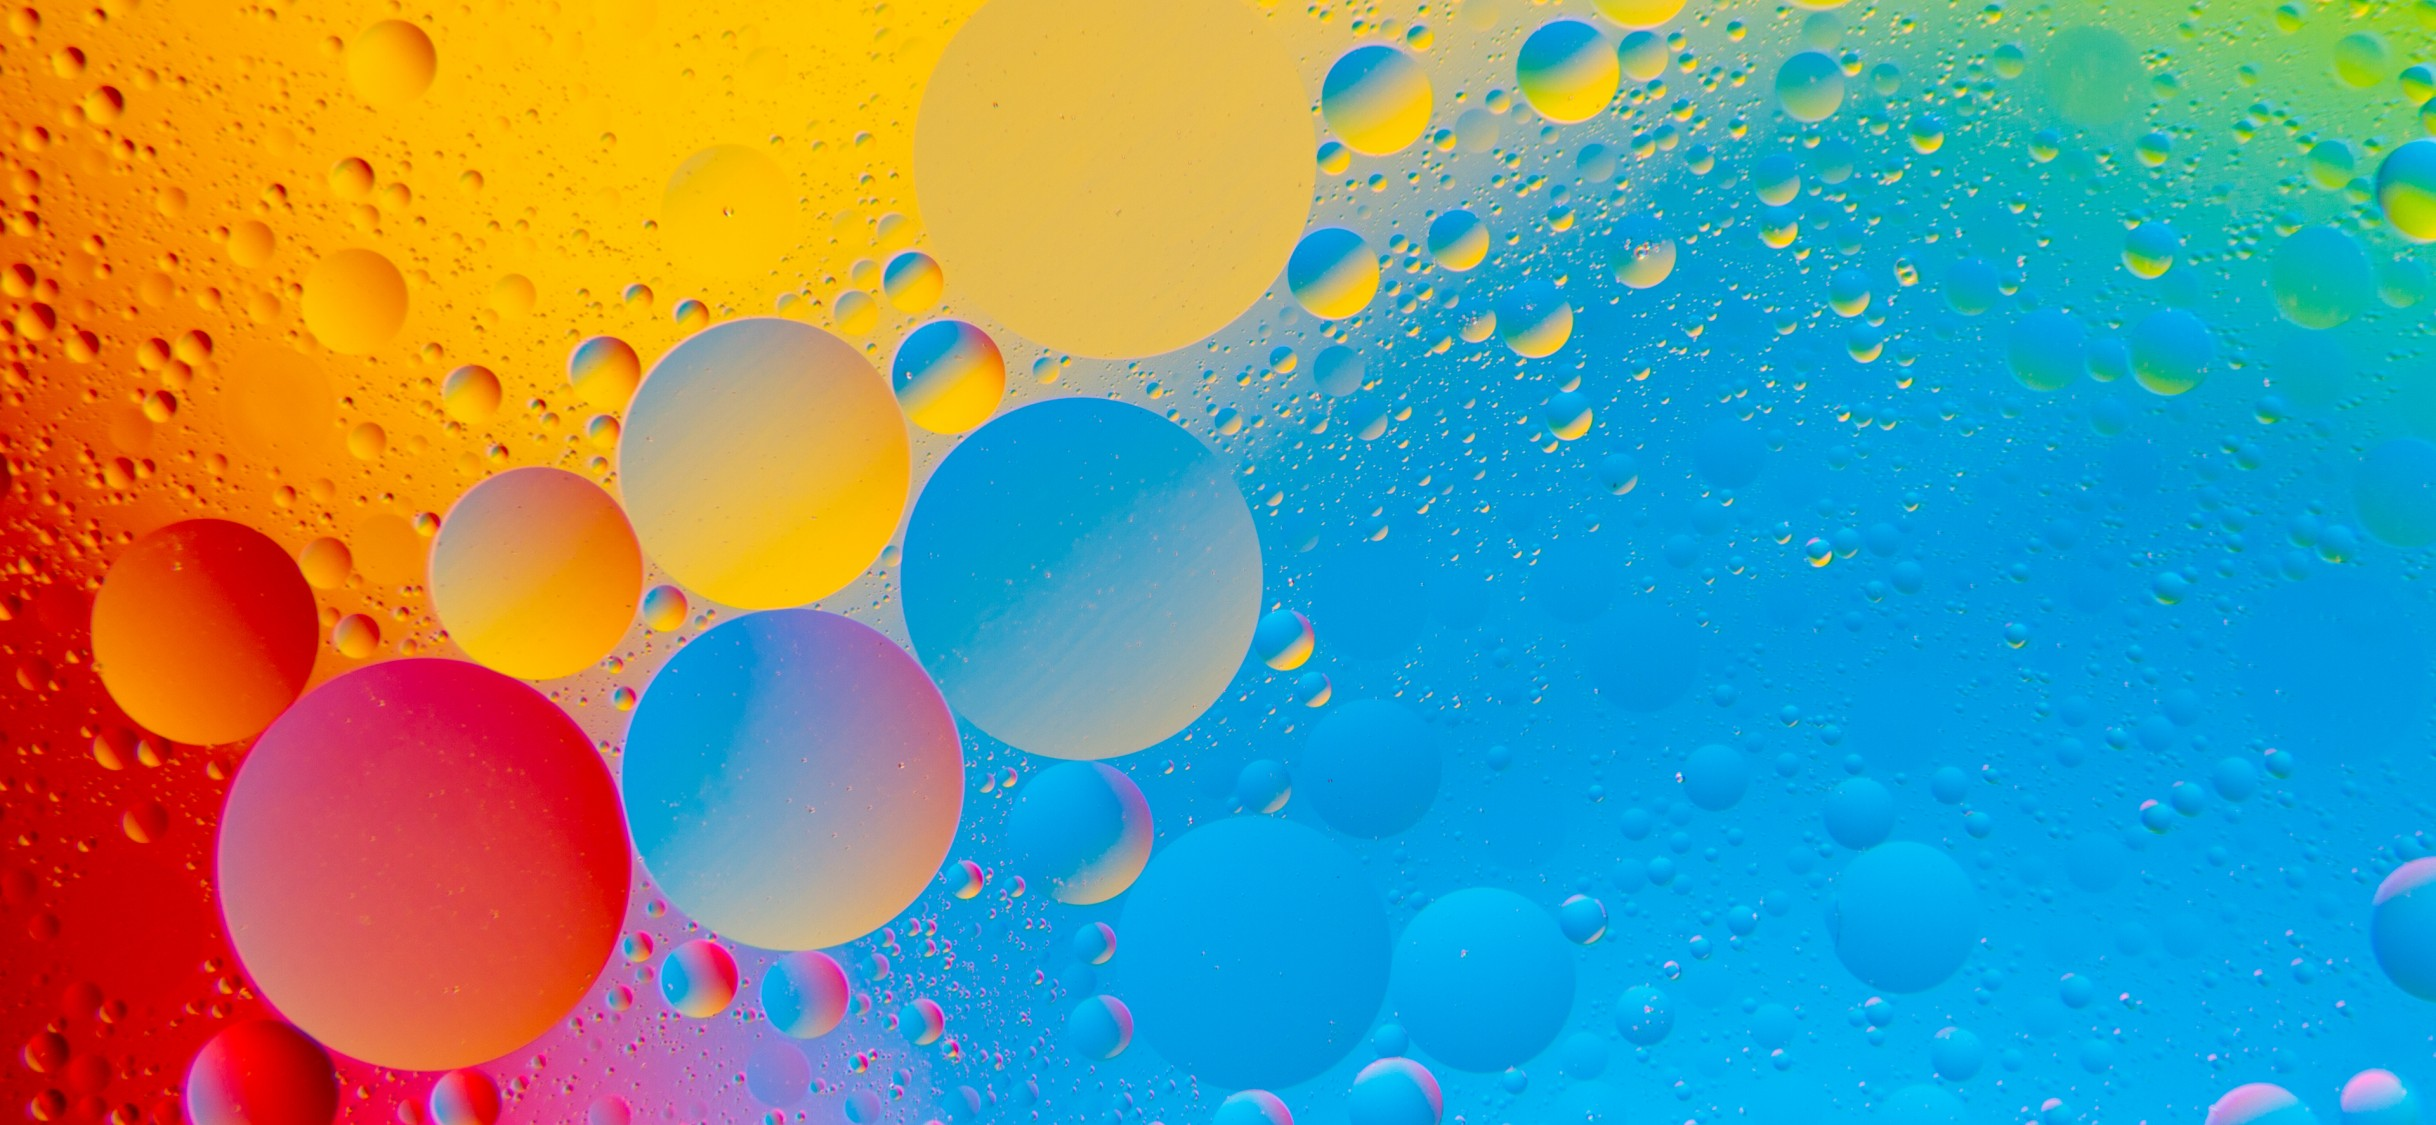 Colourful Bubbles 4k Hd Abstract Wallpaper Iphone X Hd